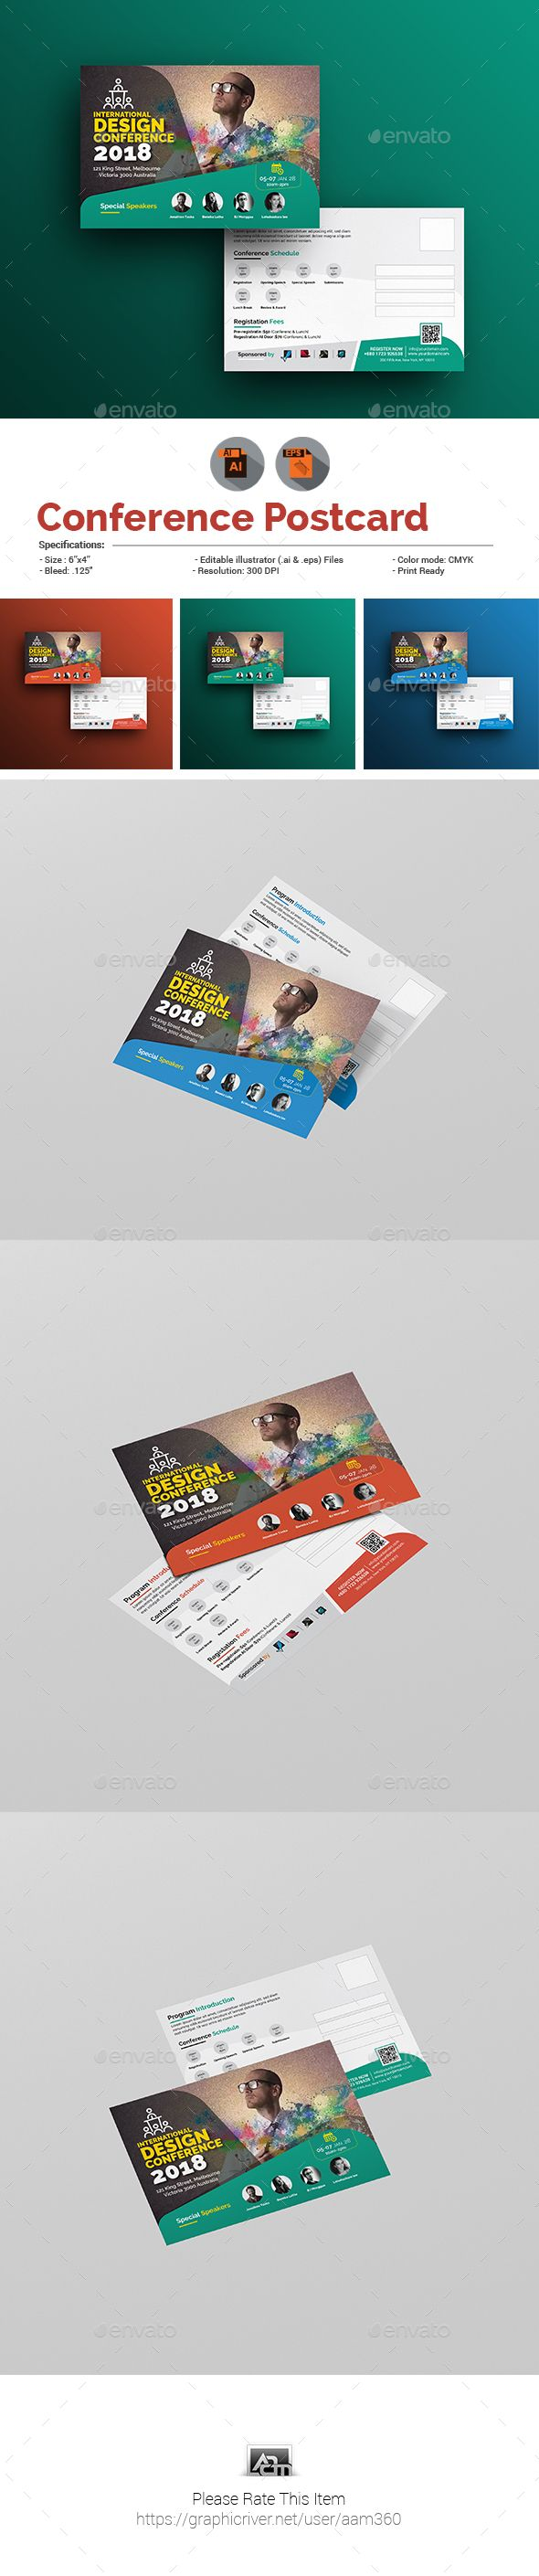 #Conference/Event #Postcard - Cards & #Invites Print Templates